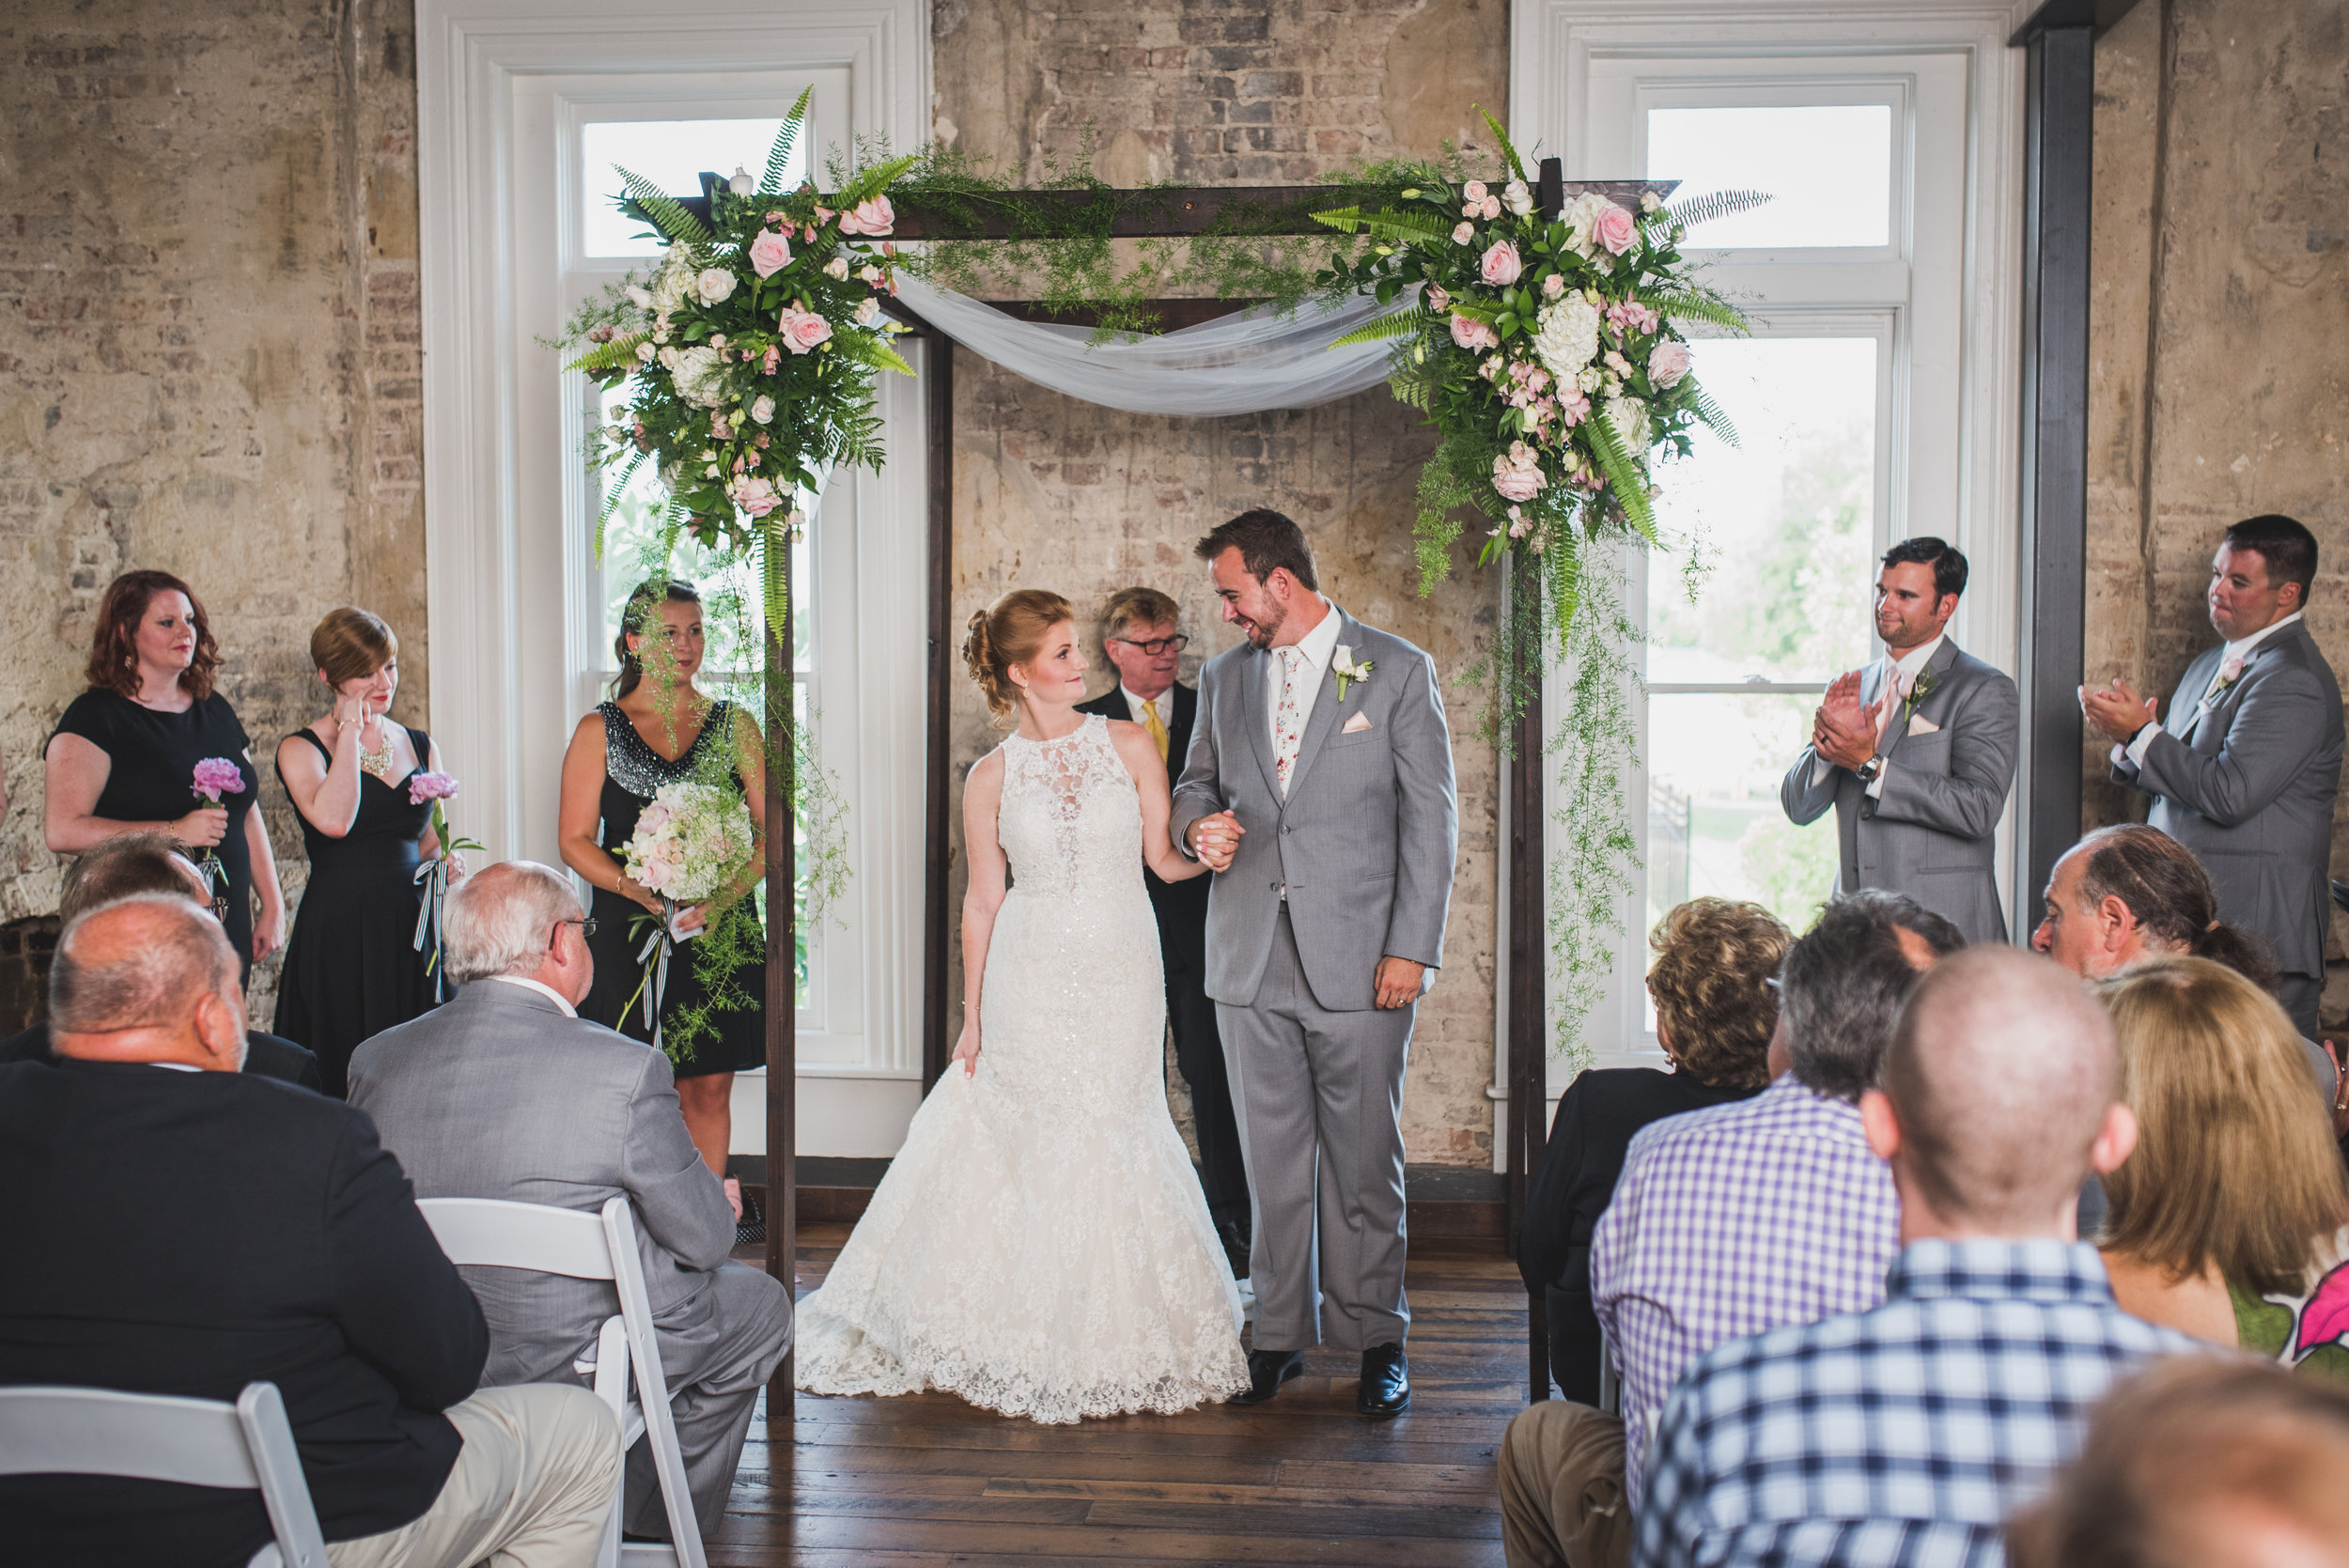 Nashville-wedding-photographers-The-Cordelle-44.JPG